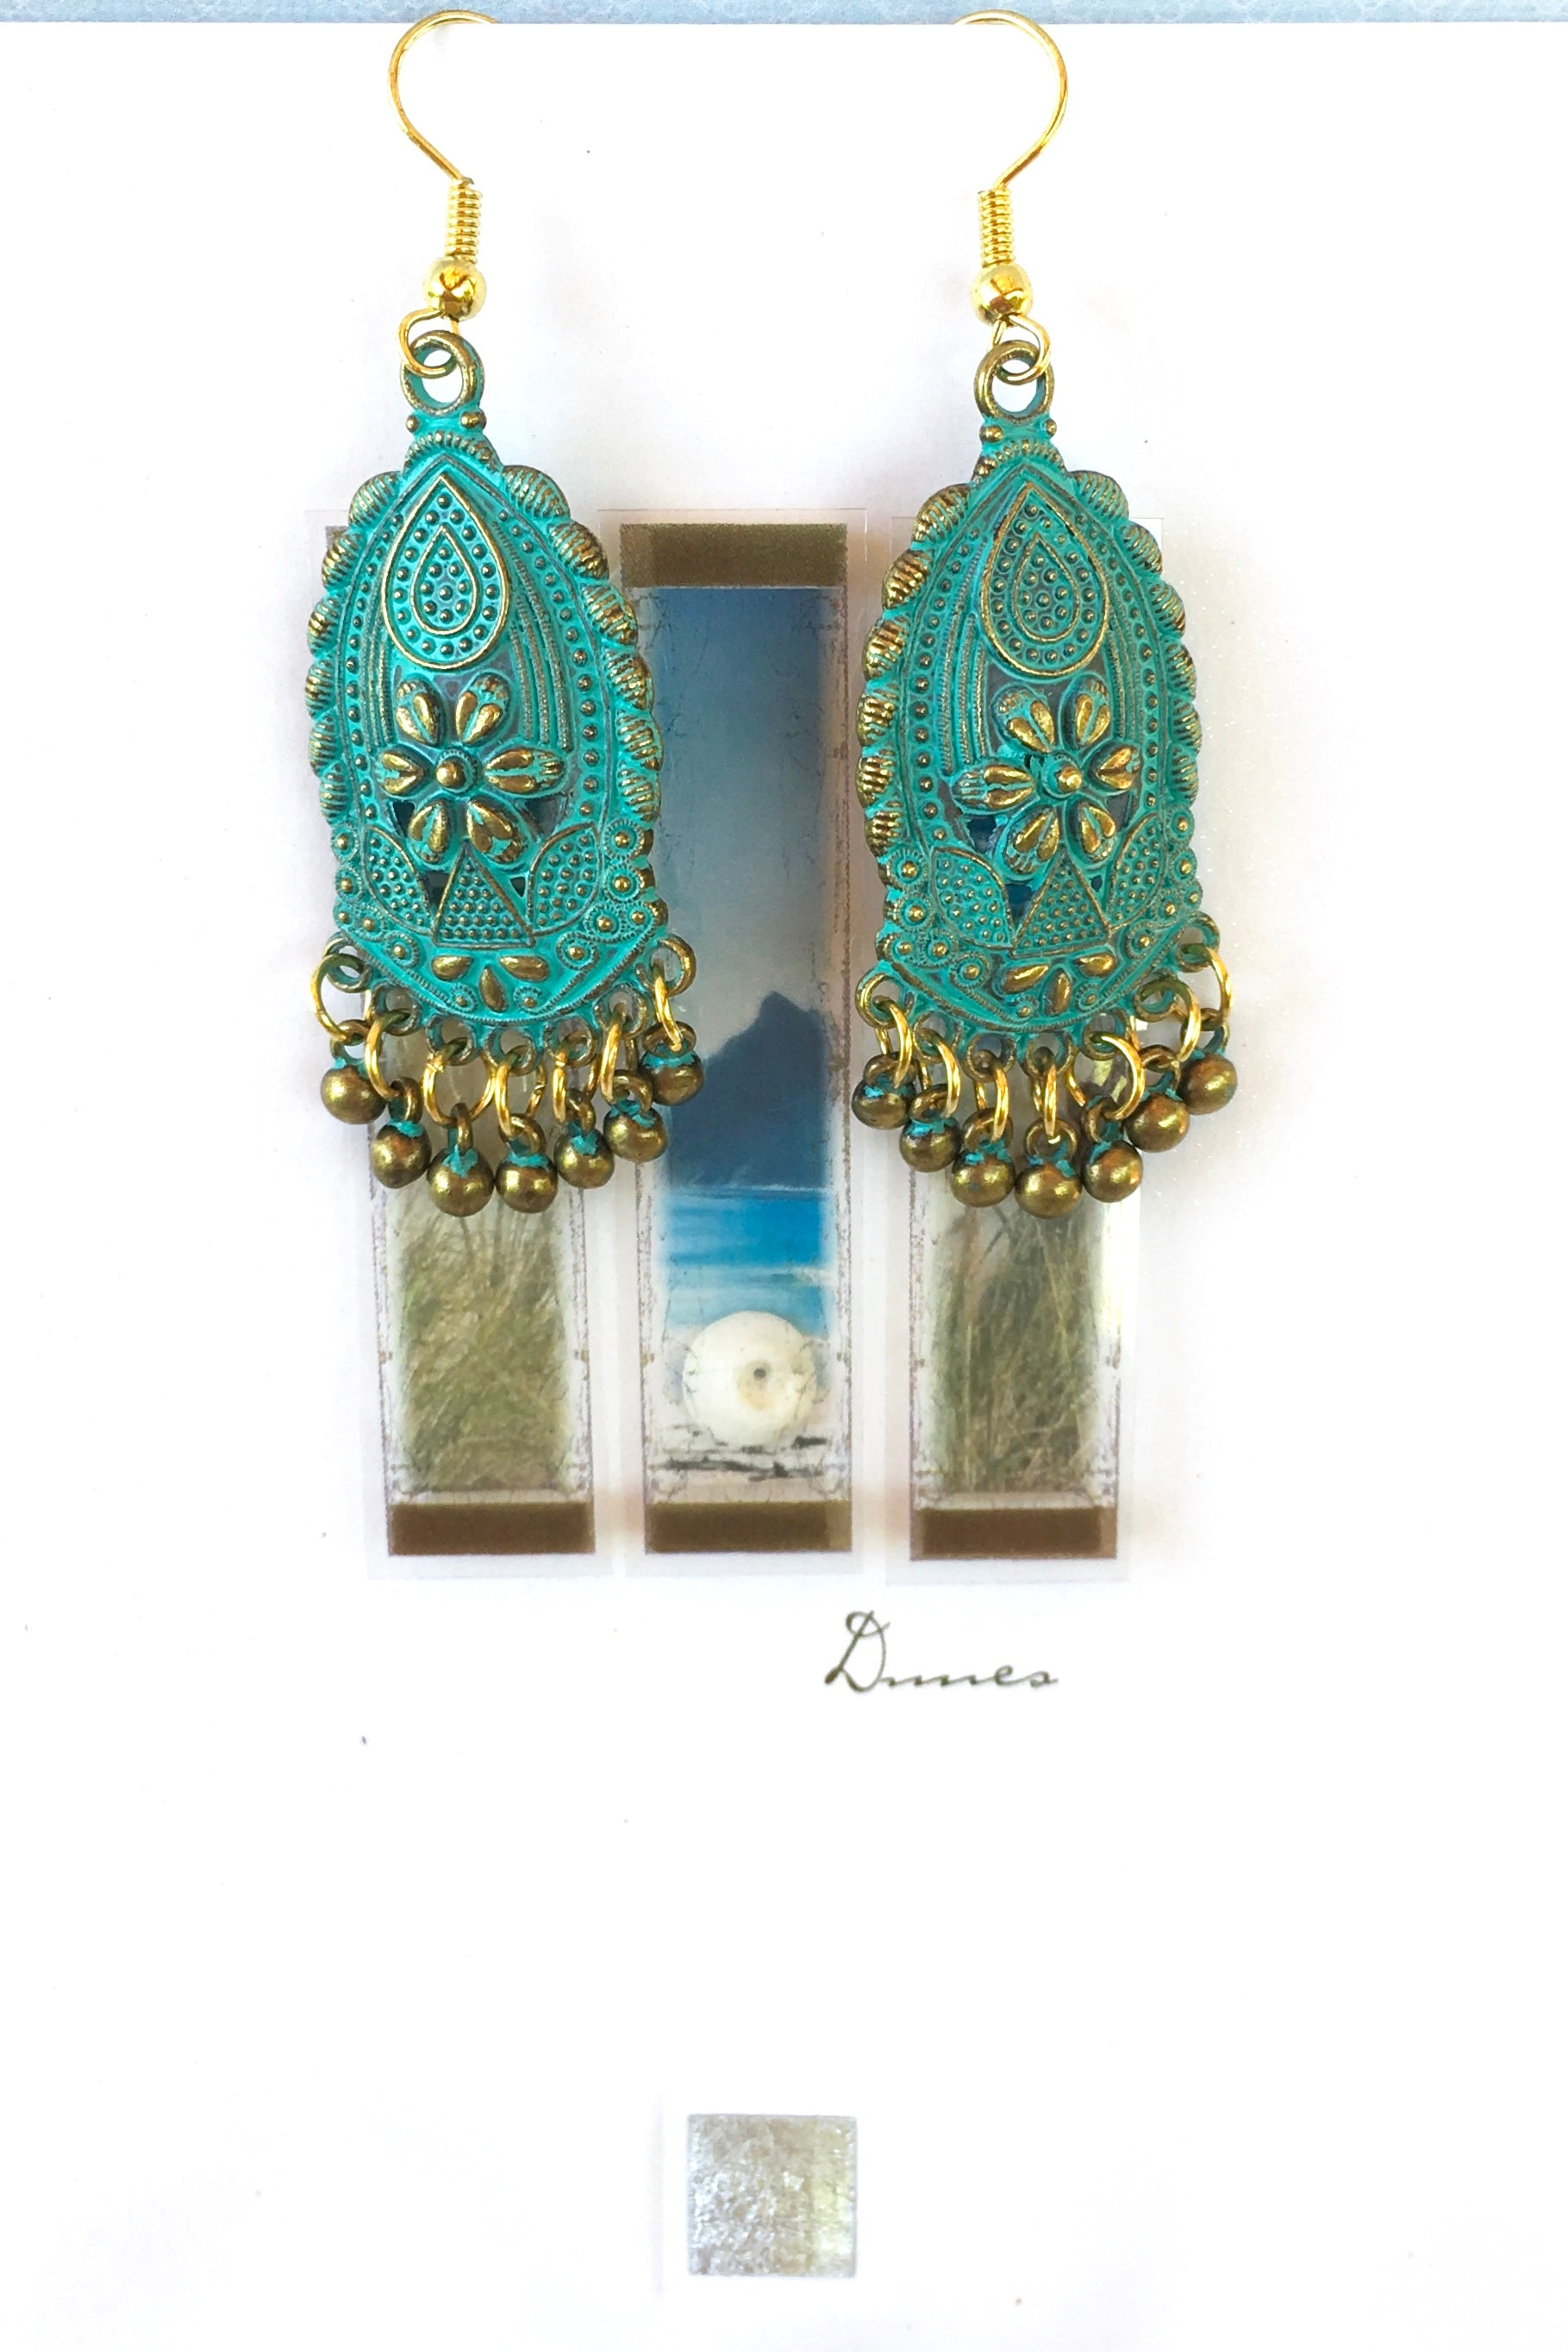 Women's Jewellery. Statement turquoise drop earrings. Ancient bohemian inspired accessory. Gold metal hook. Drop style turquoise flowers medallions with ancient bronze finish. Jingling beads. Perfect gift for ladies, everyday wear, night out. Designed in Brisbane Australia.